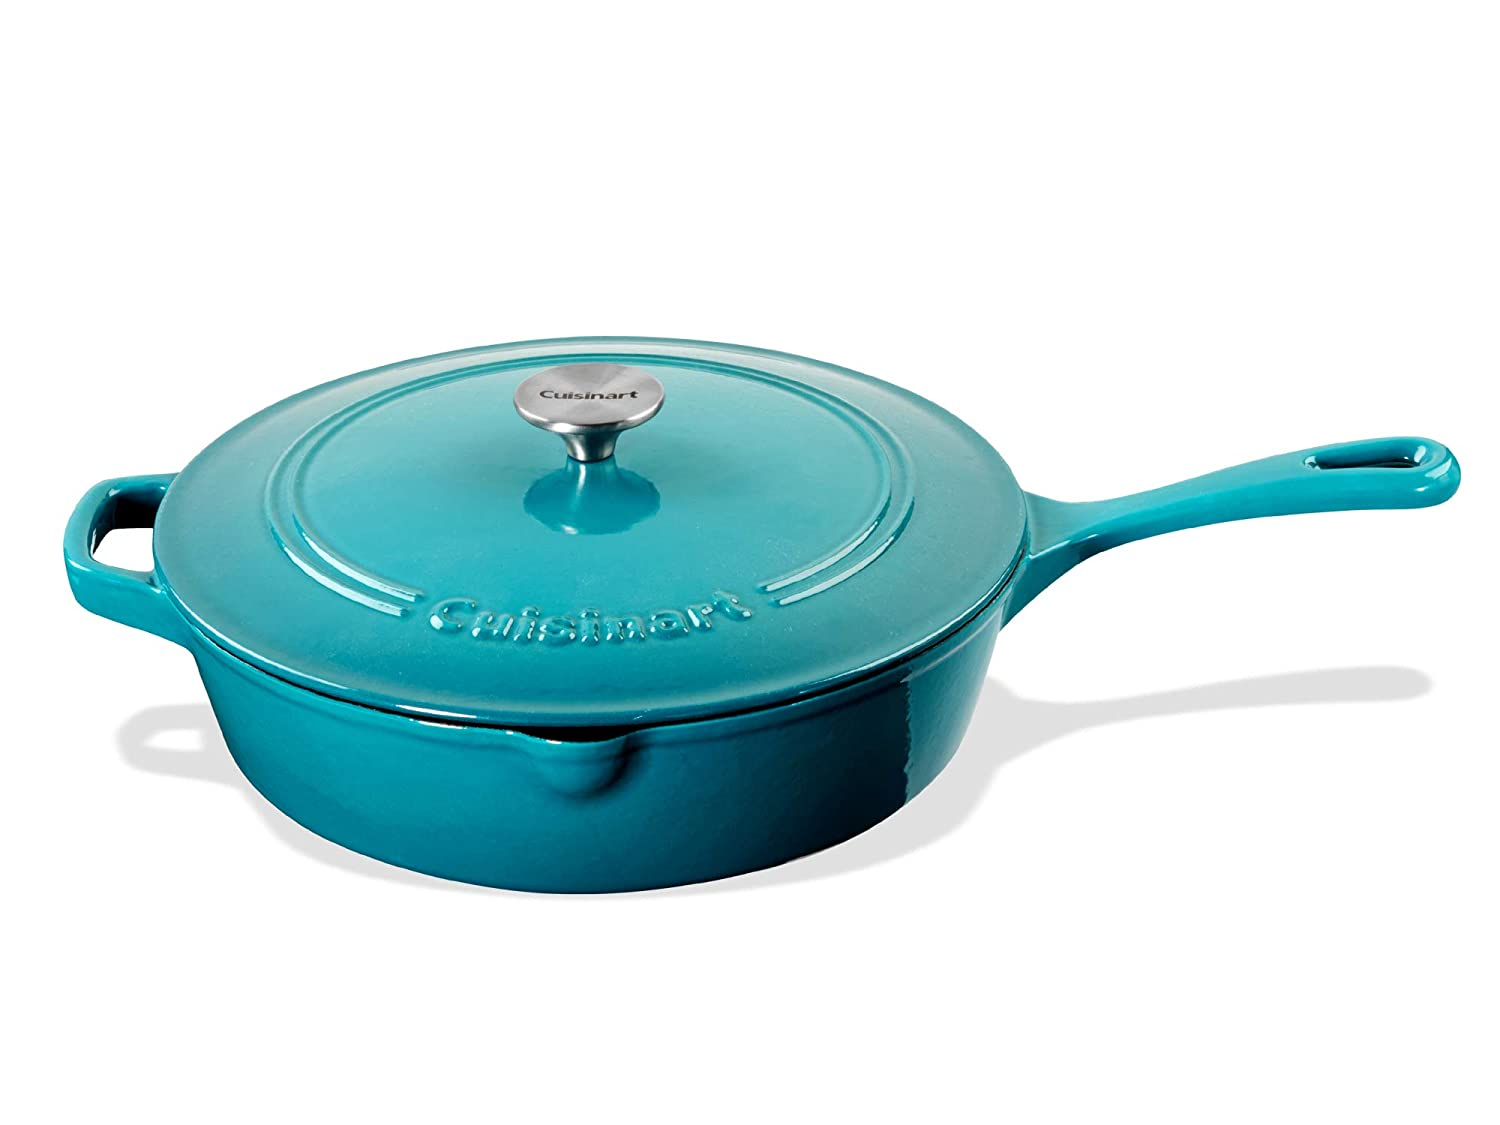 CUISINART Chicken Fryer, Teal Gradient, 12""